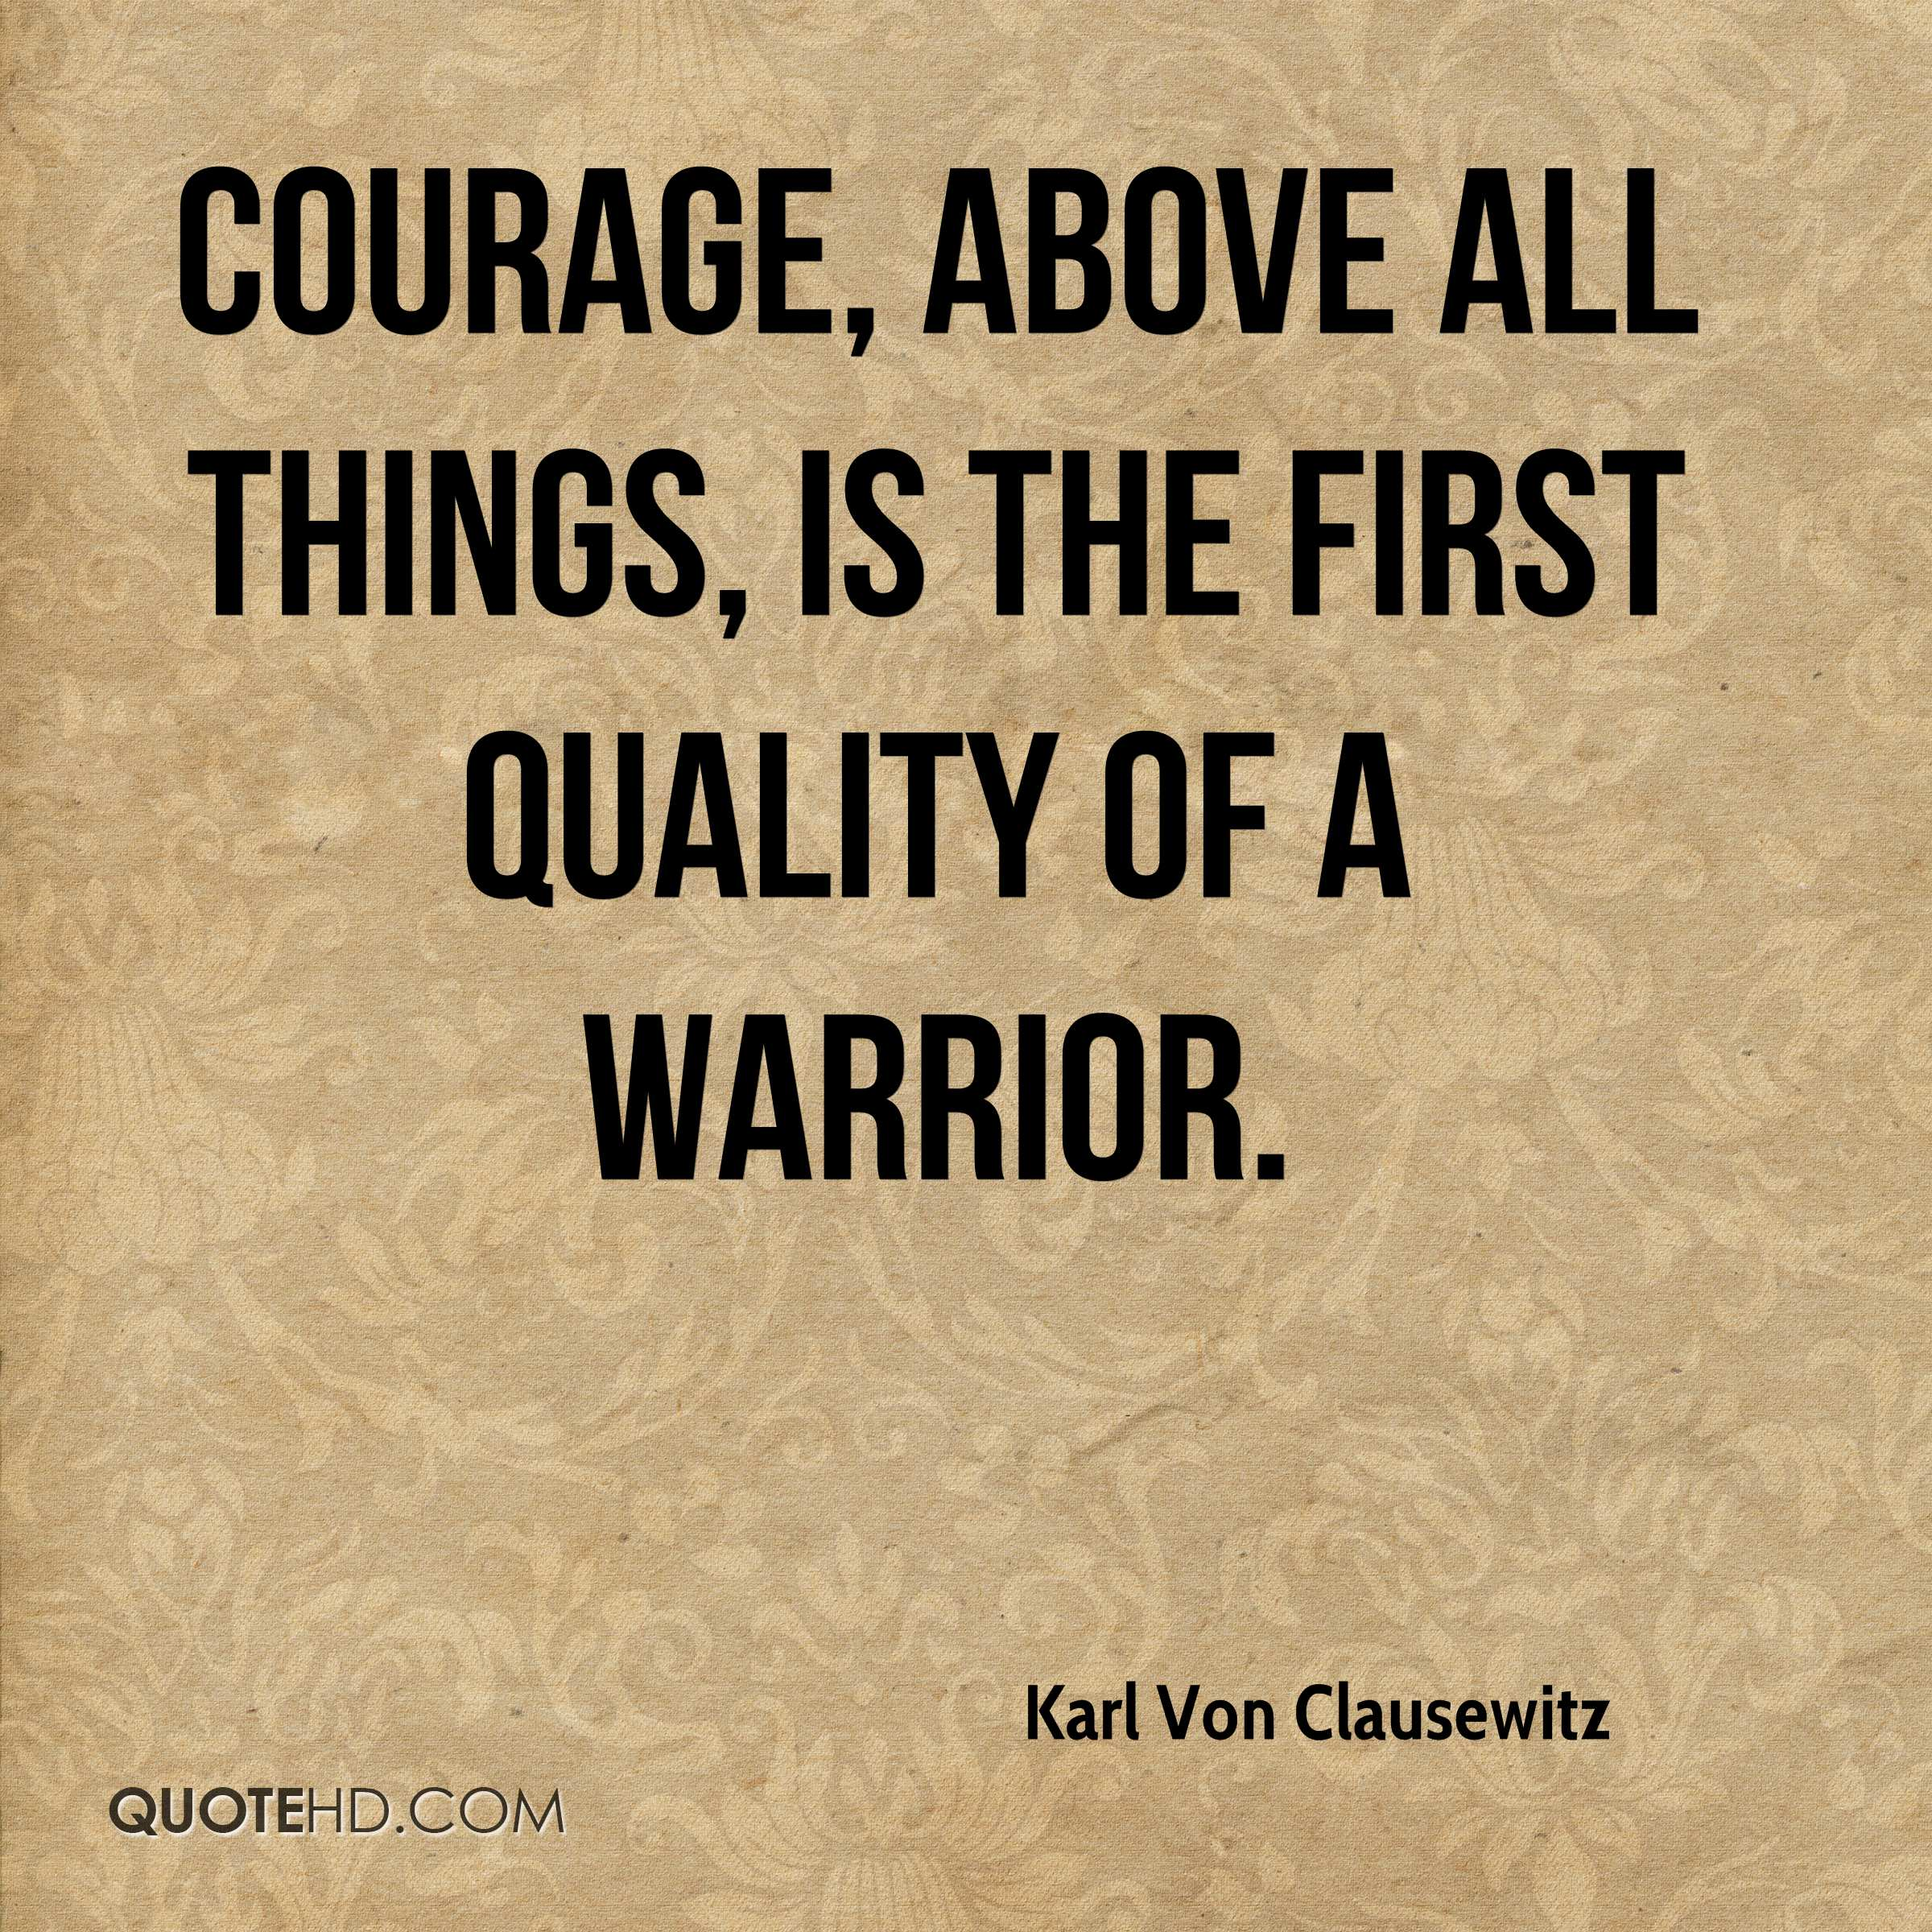 Courage, above all things, is the first quality of a warrior.